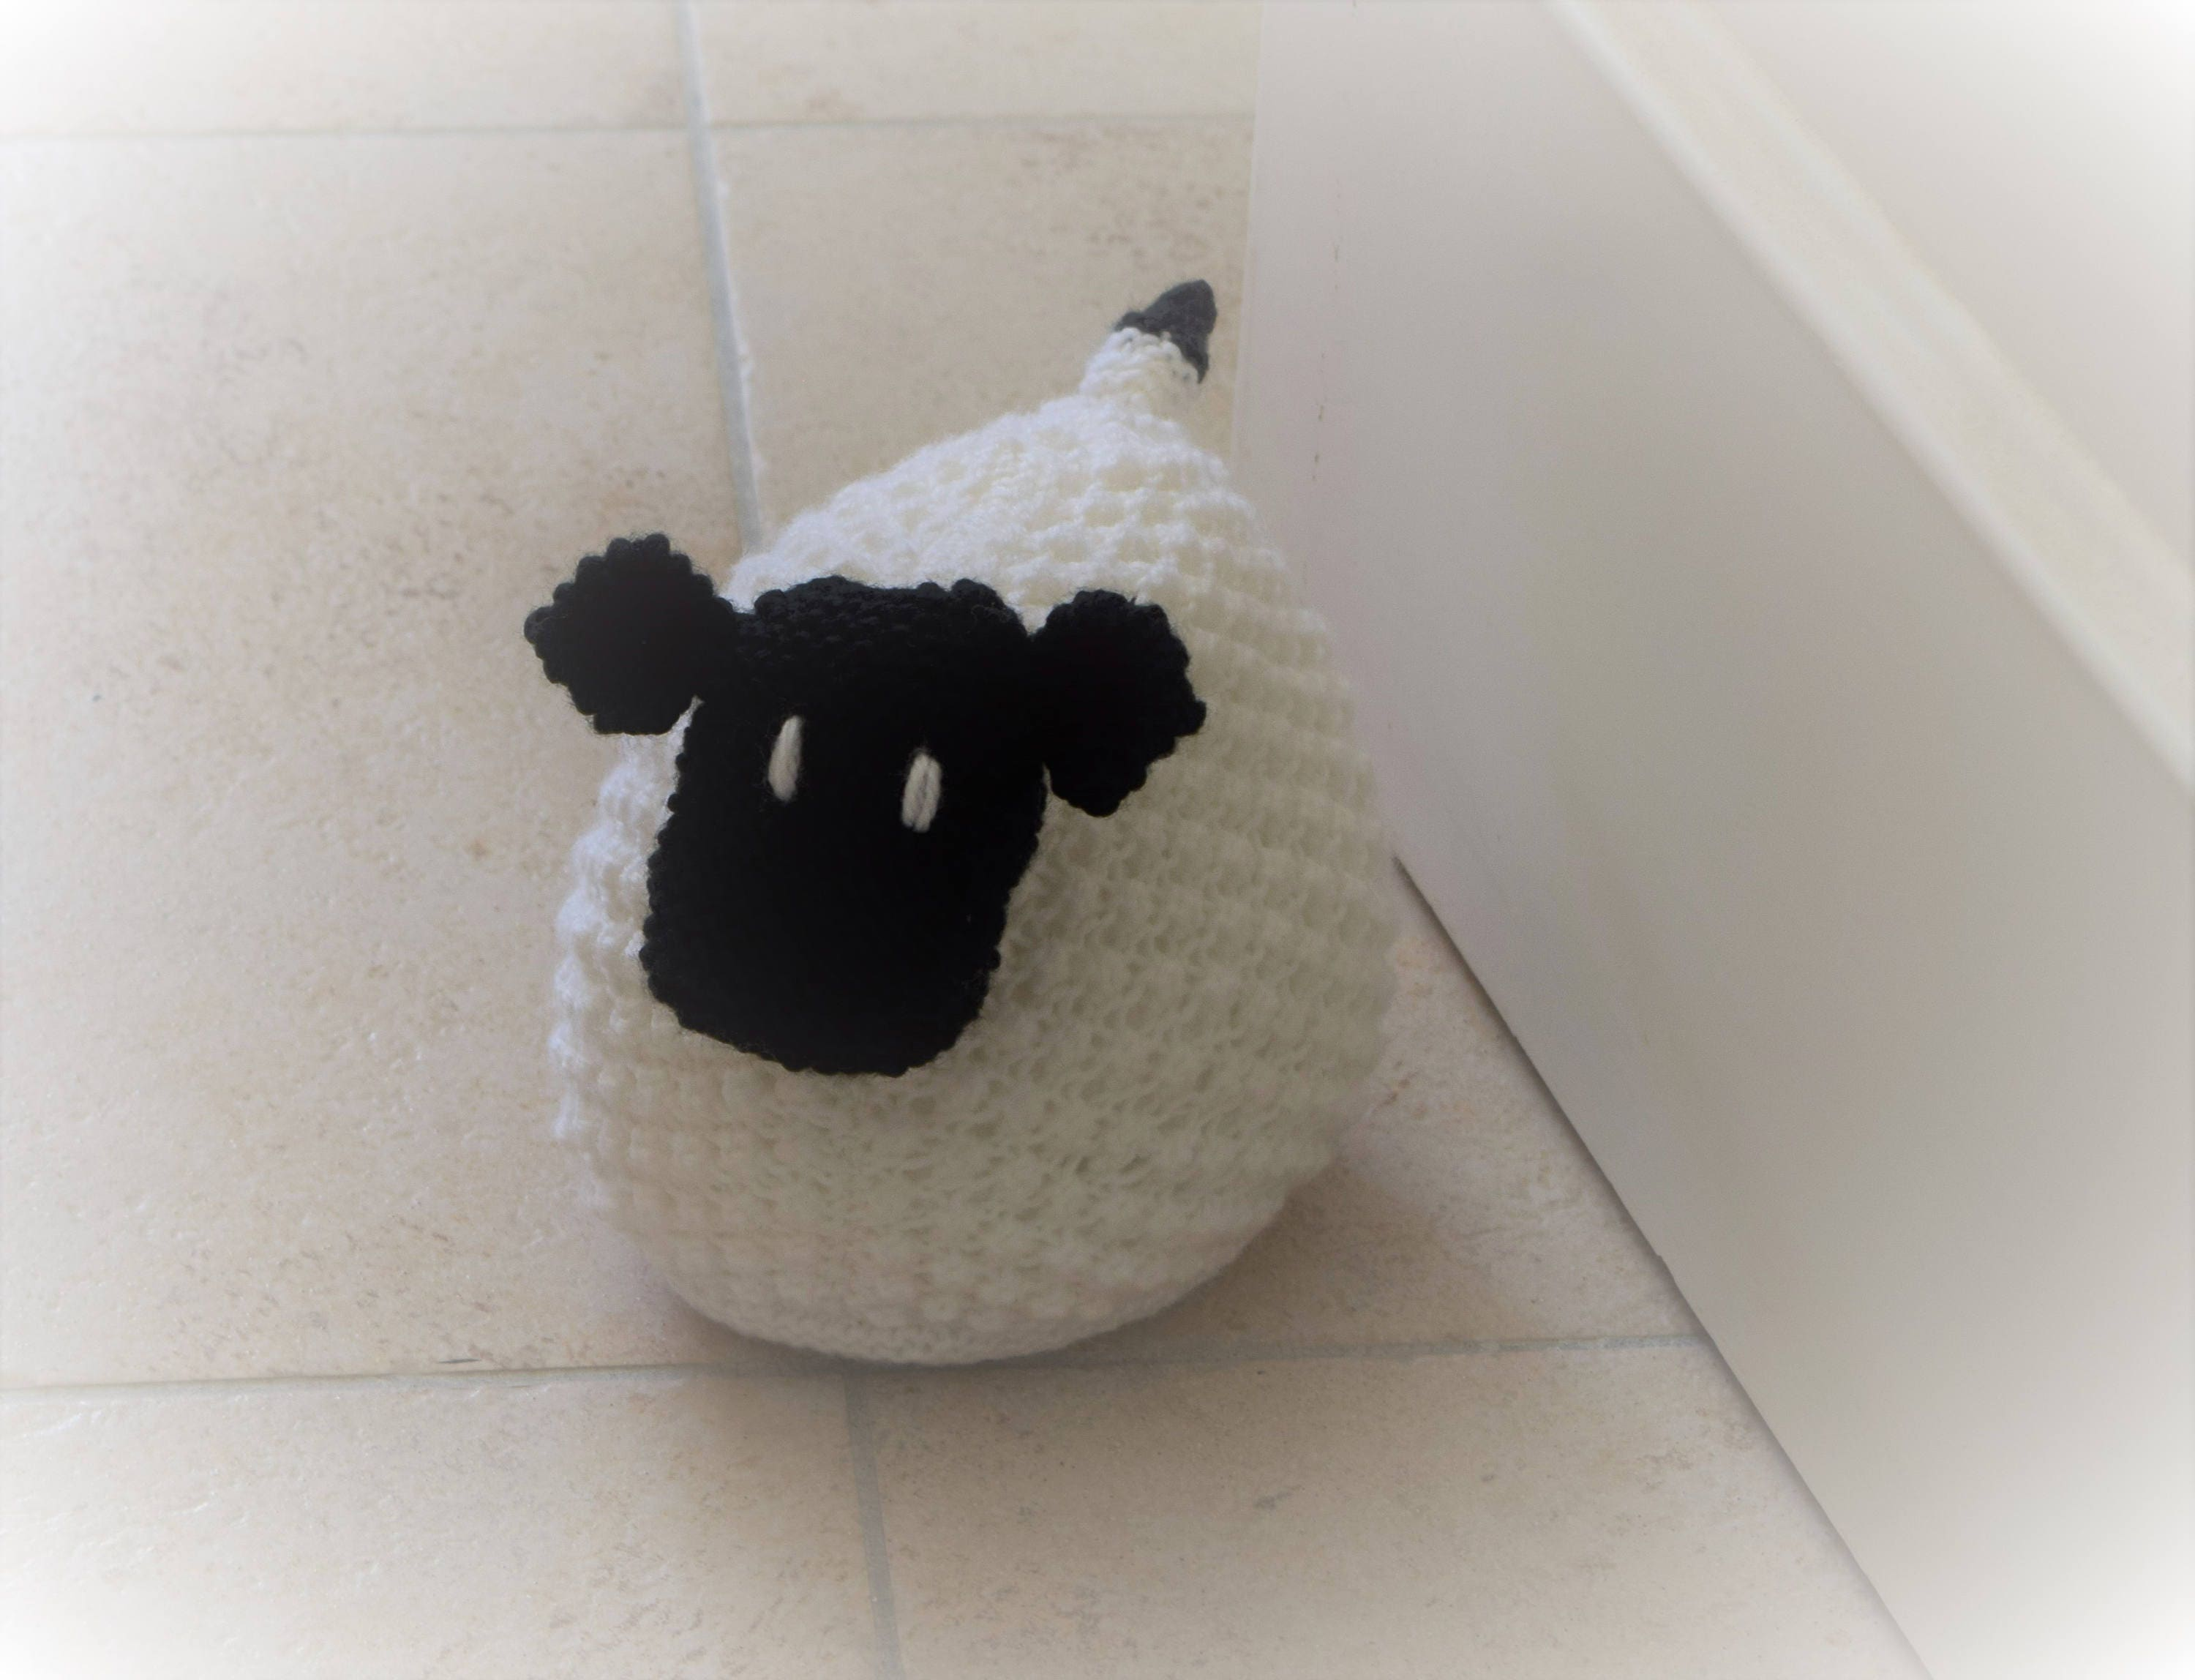 Doorstop knitting pattern sheep knitting pattern sheep doorstop gallery photo gallery photo gallery photo gallery photo bankloansurffo Gallery